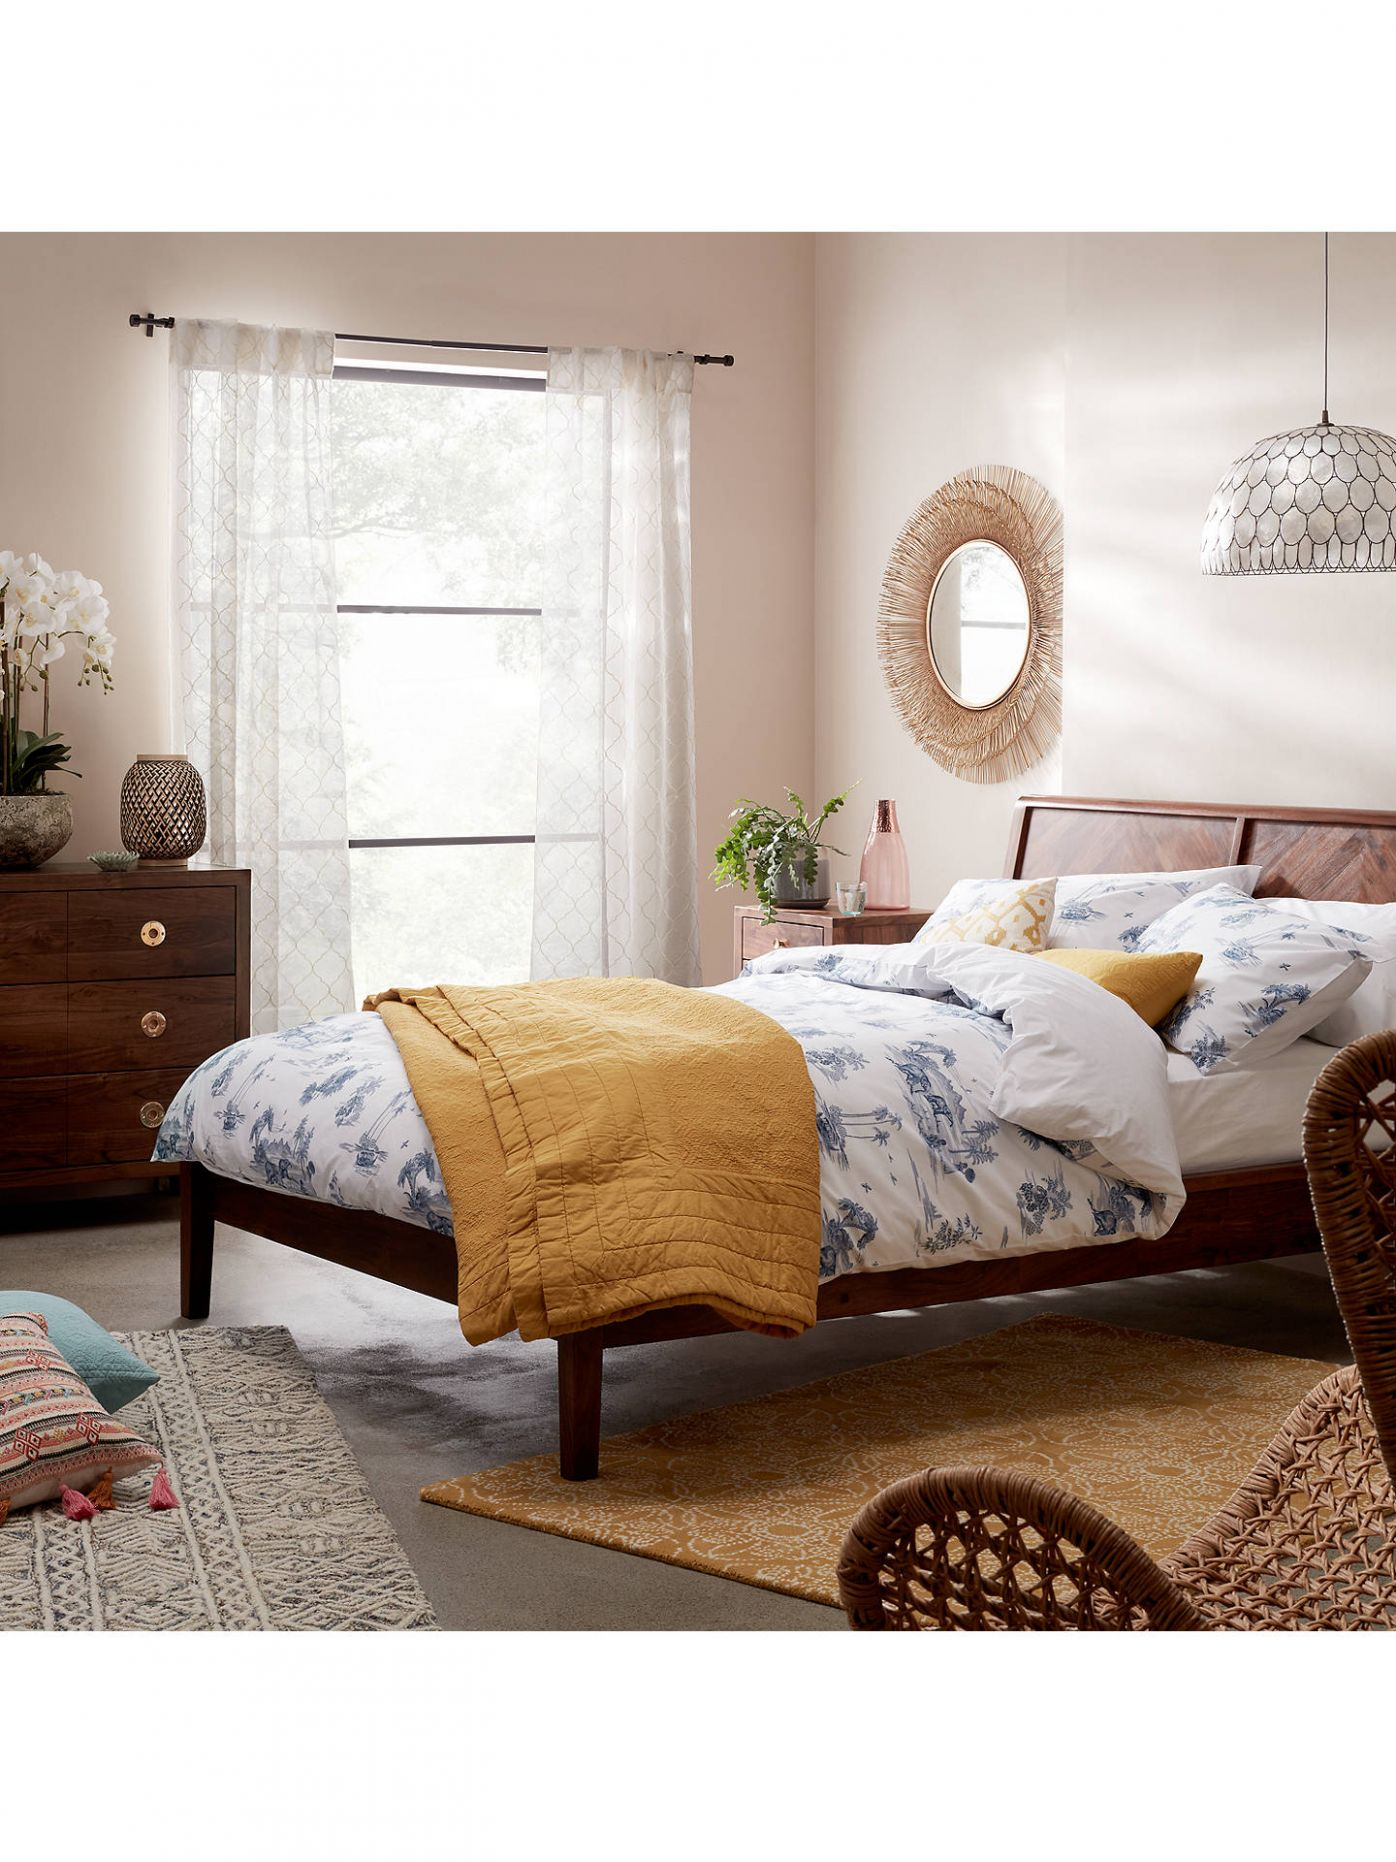 John Lewis & Partners Padma Parquet Bed Frame, Double, Brown - bedroom ideas john lewis